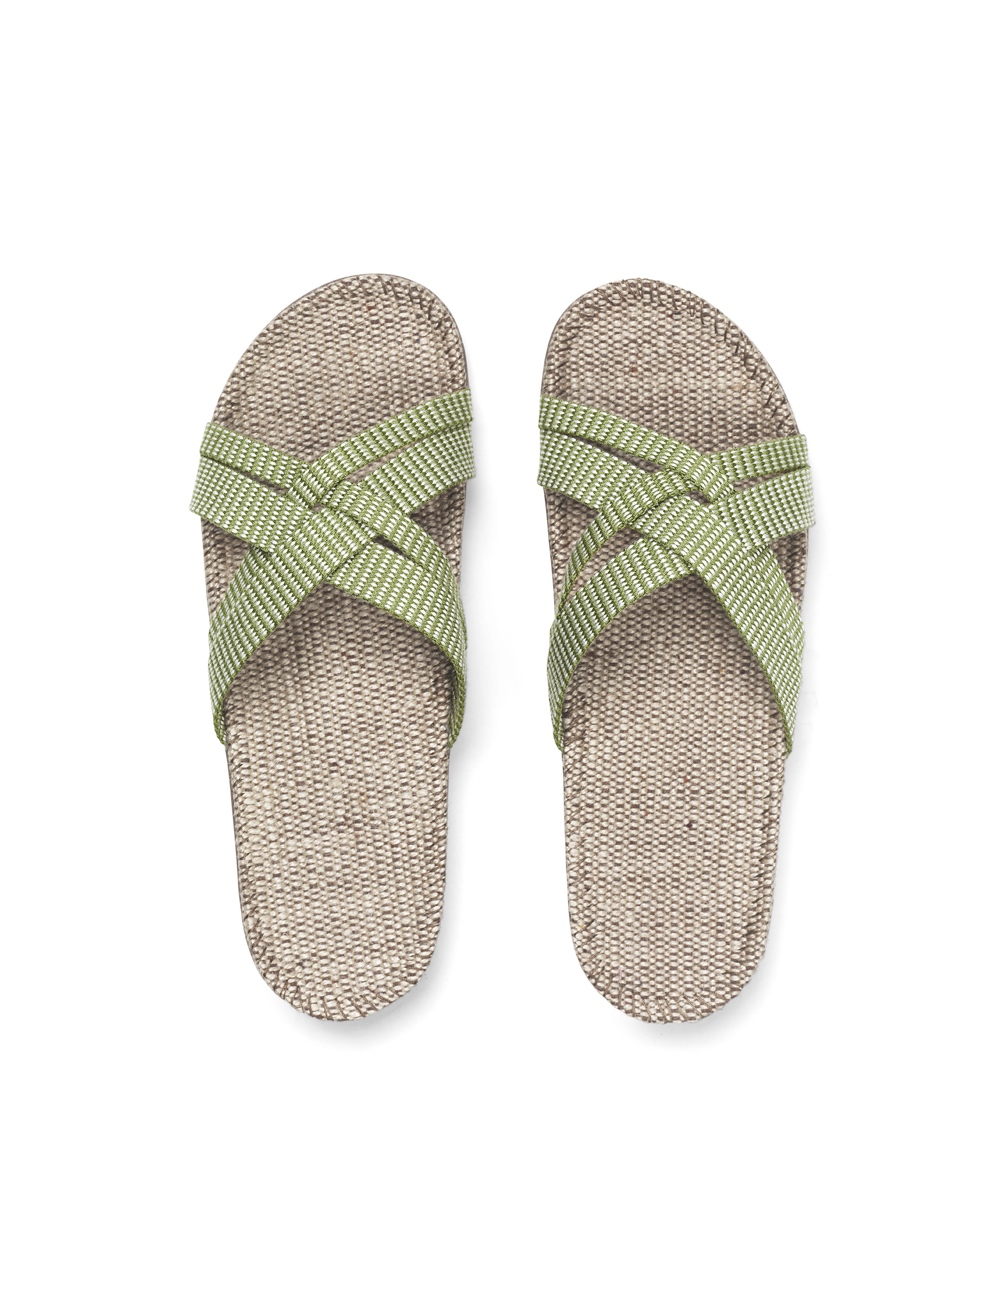 Sandals Green Leaves